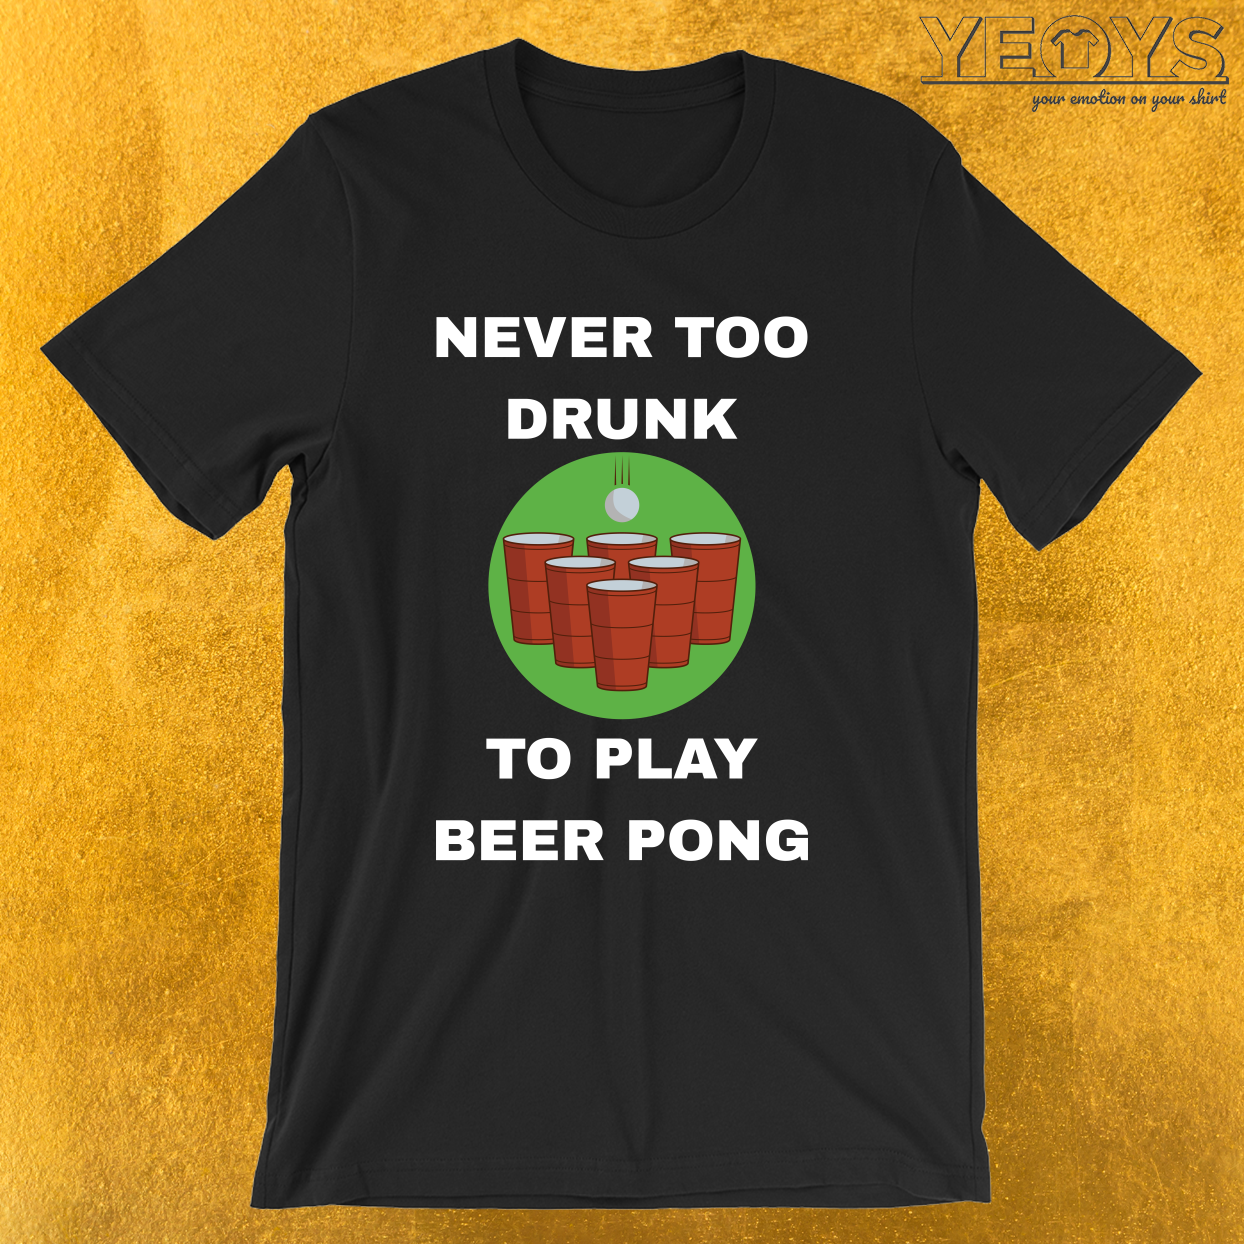 Never Too Drunk To Play Beer Pong – Funny Beer Pong Tee